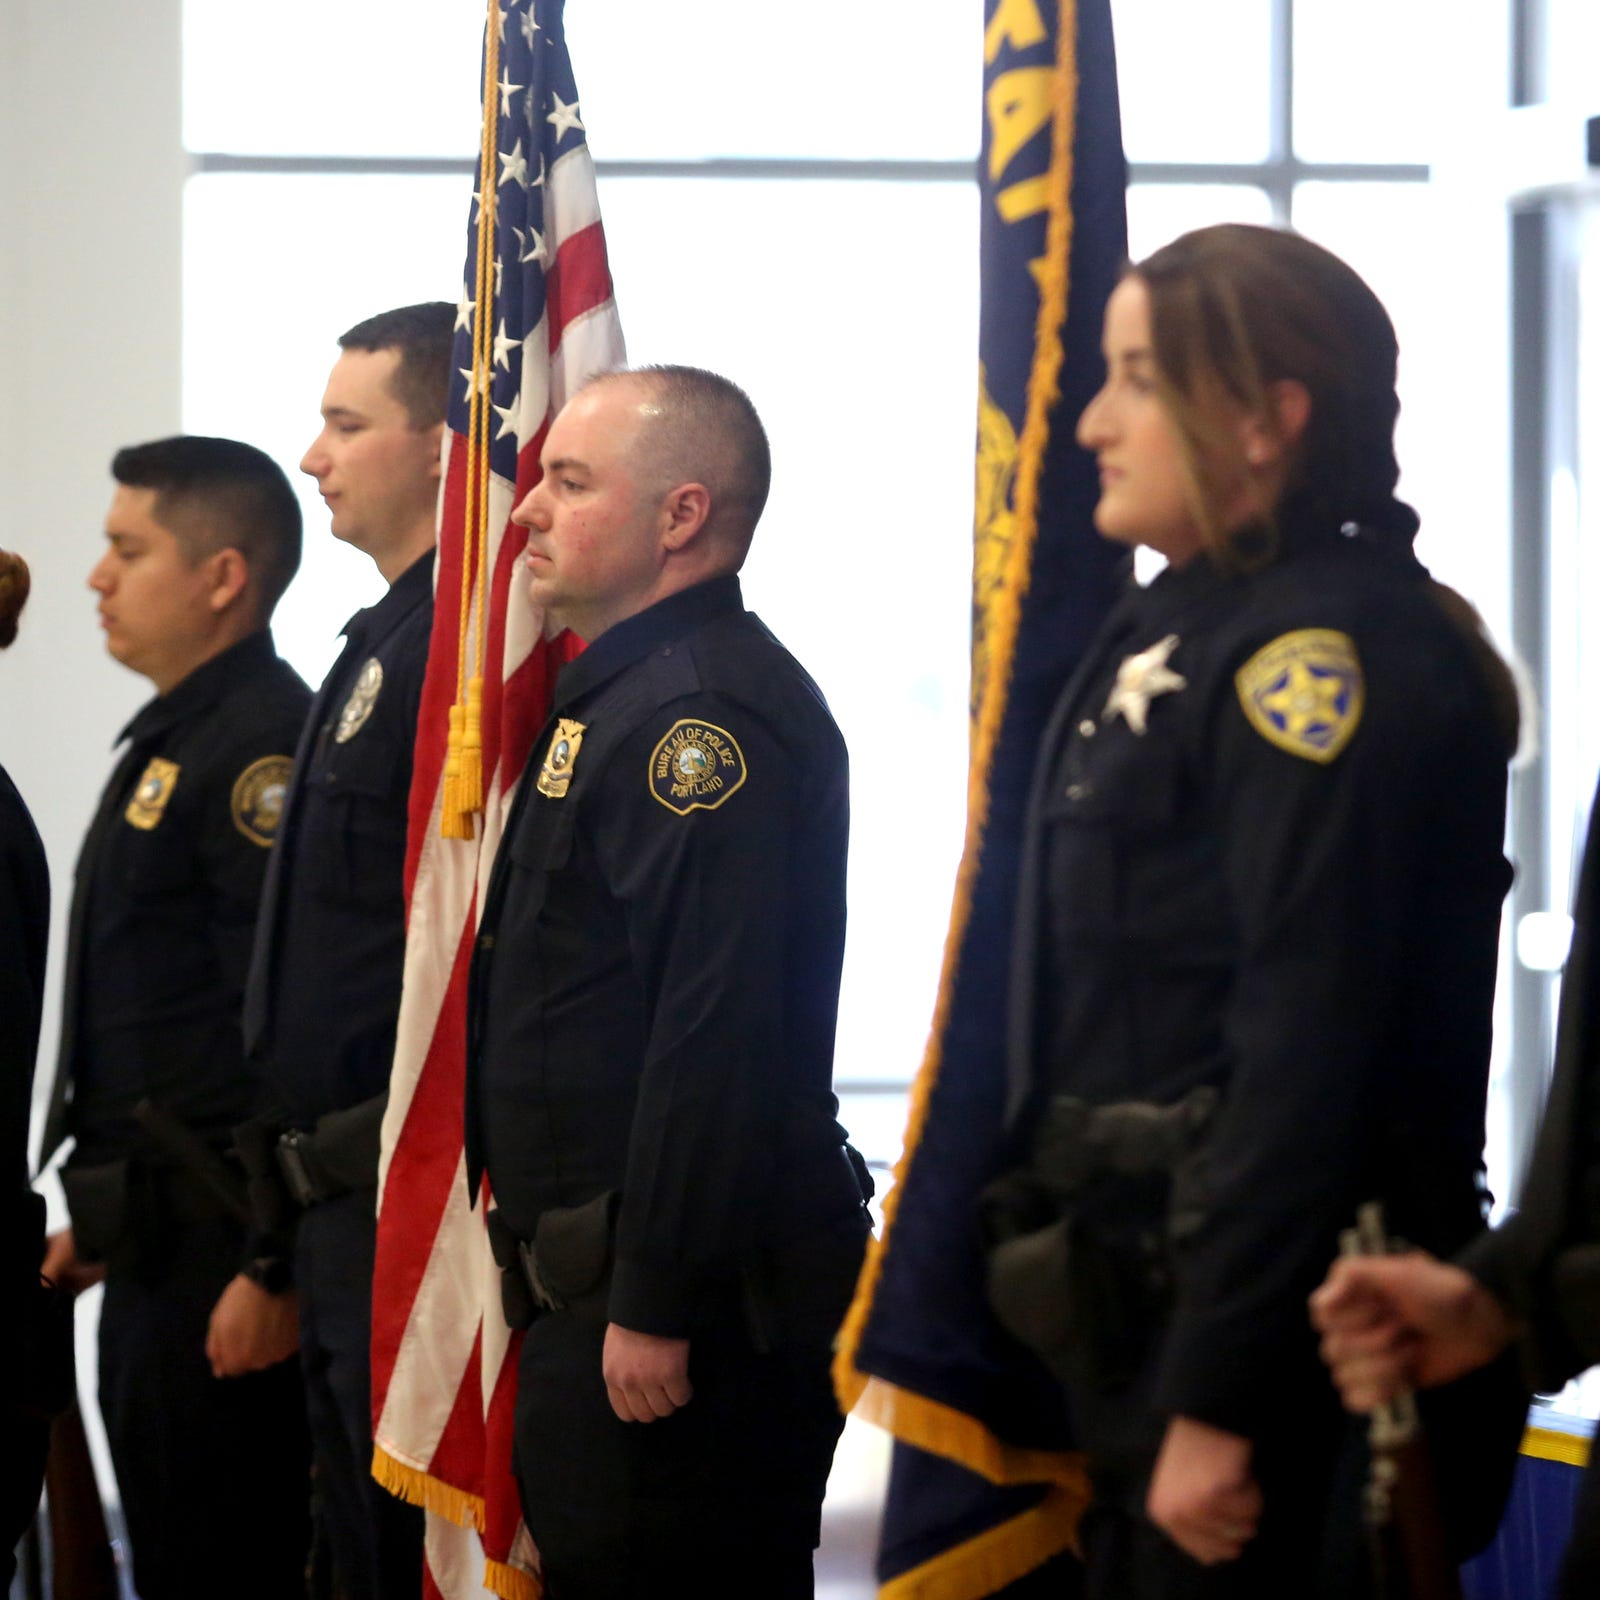 Behind the badge: Suicide's toll on police, other first responders